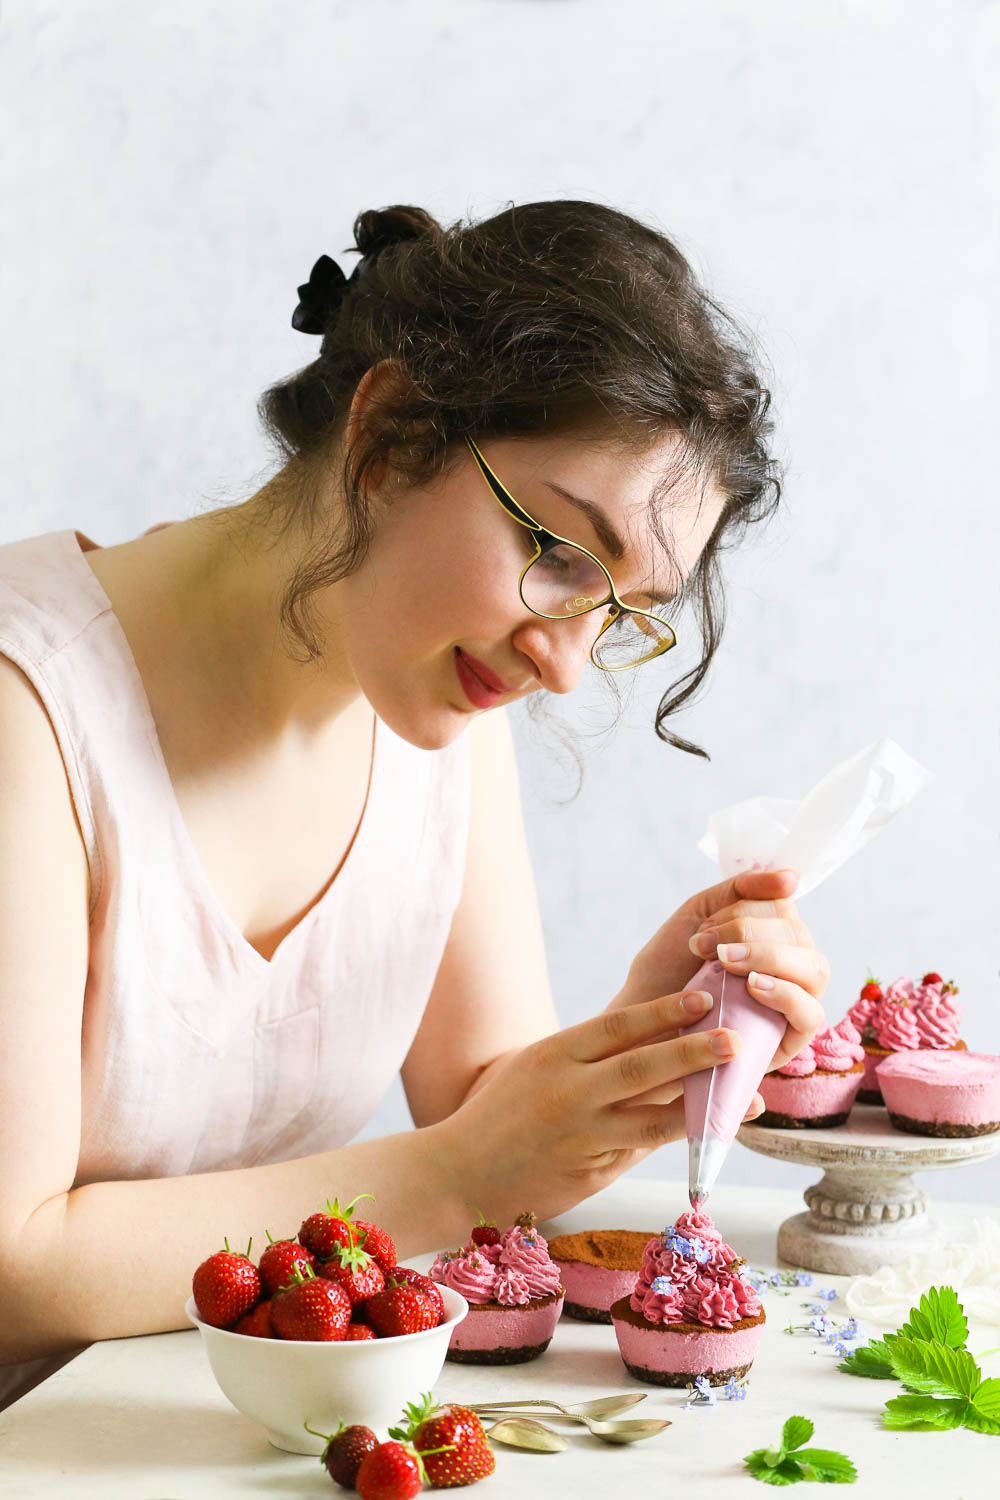 The author of The Loopy Whisk food blog, Kat, in the process of decorating raw vegan strawberry cupcakes.